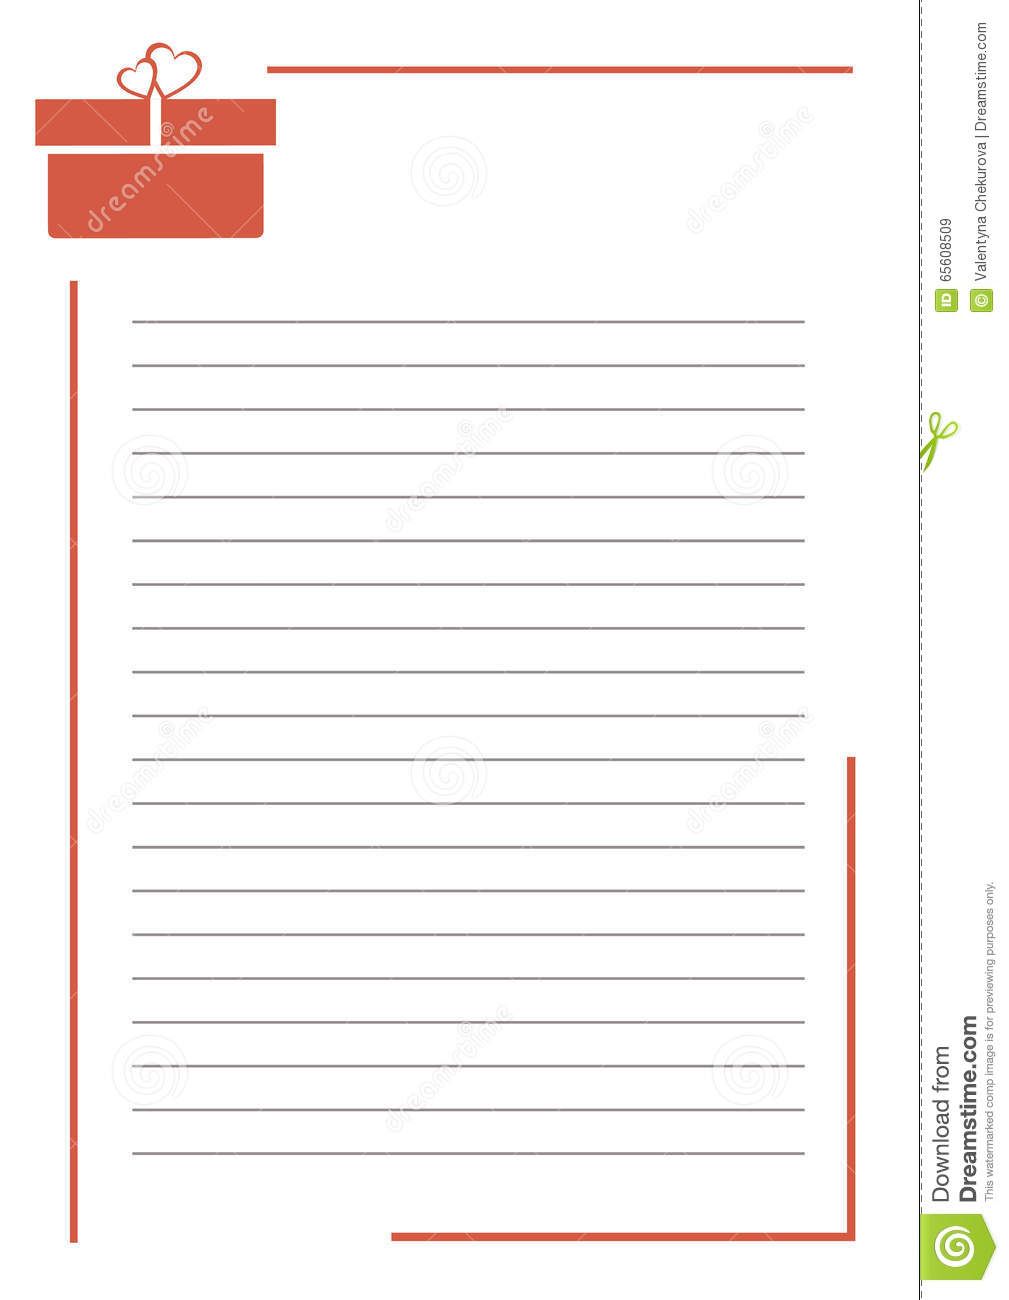 011 Note Card Maker For Research Paper Vector Blank Letter Greeting White Form Red Gift Box Lines Border Format Size Marvelous Full